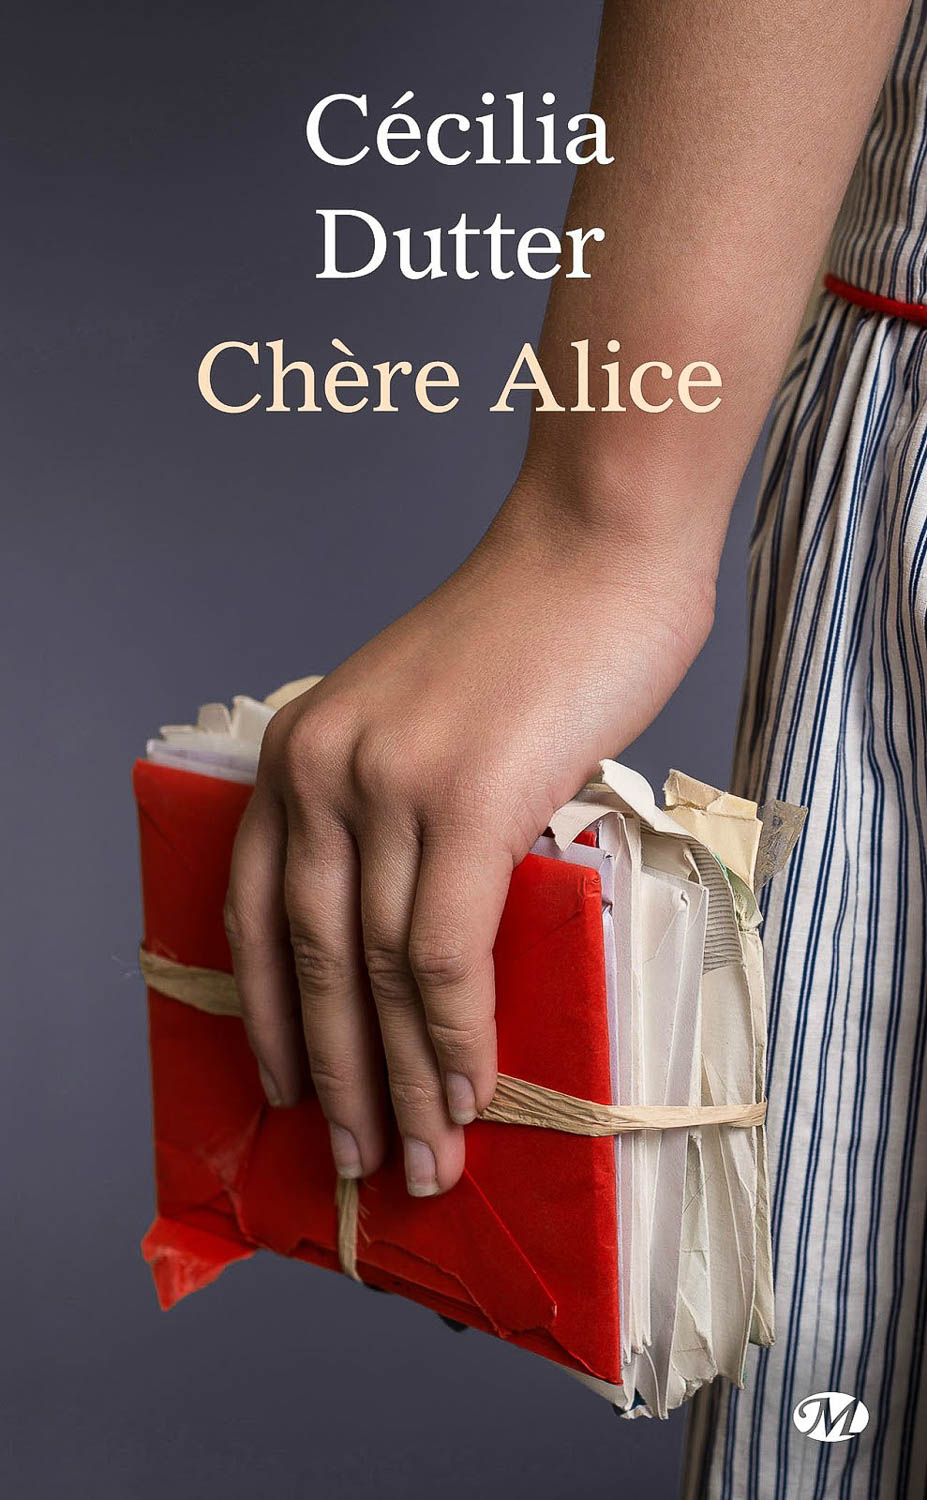 Dutter, Chère Alice Book Cover Photograph by Wolf Kettler